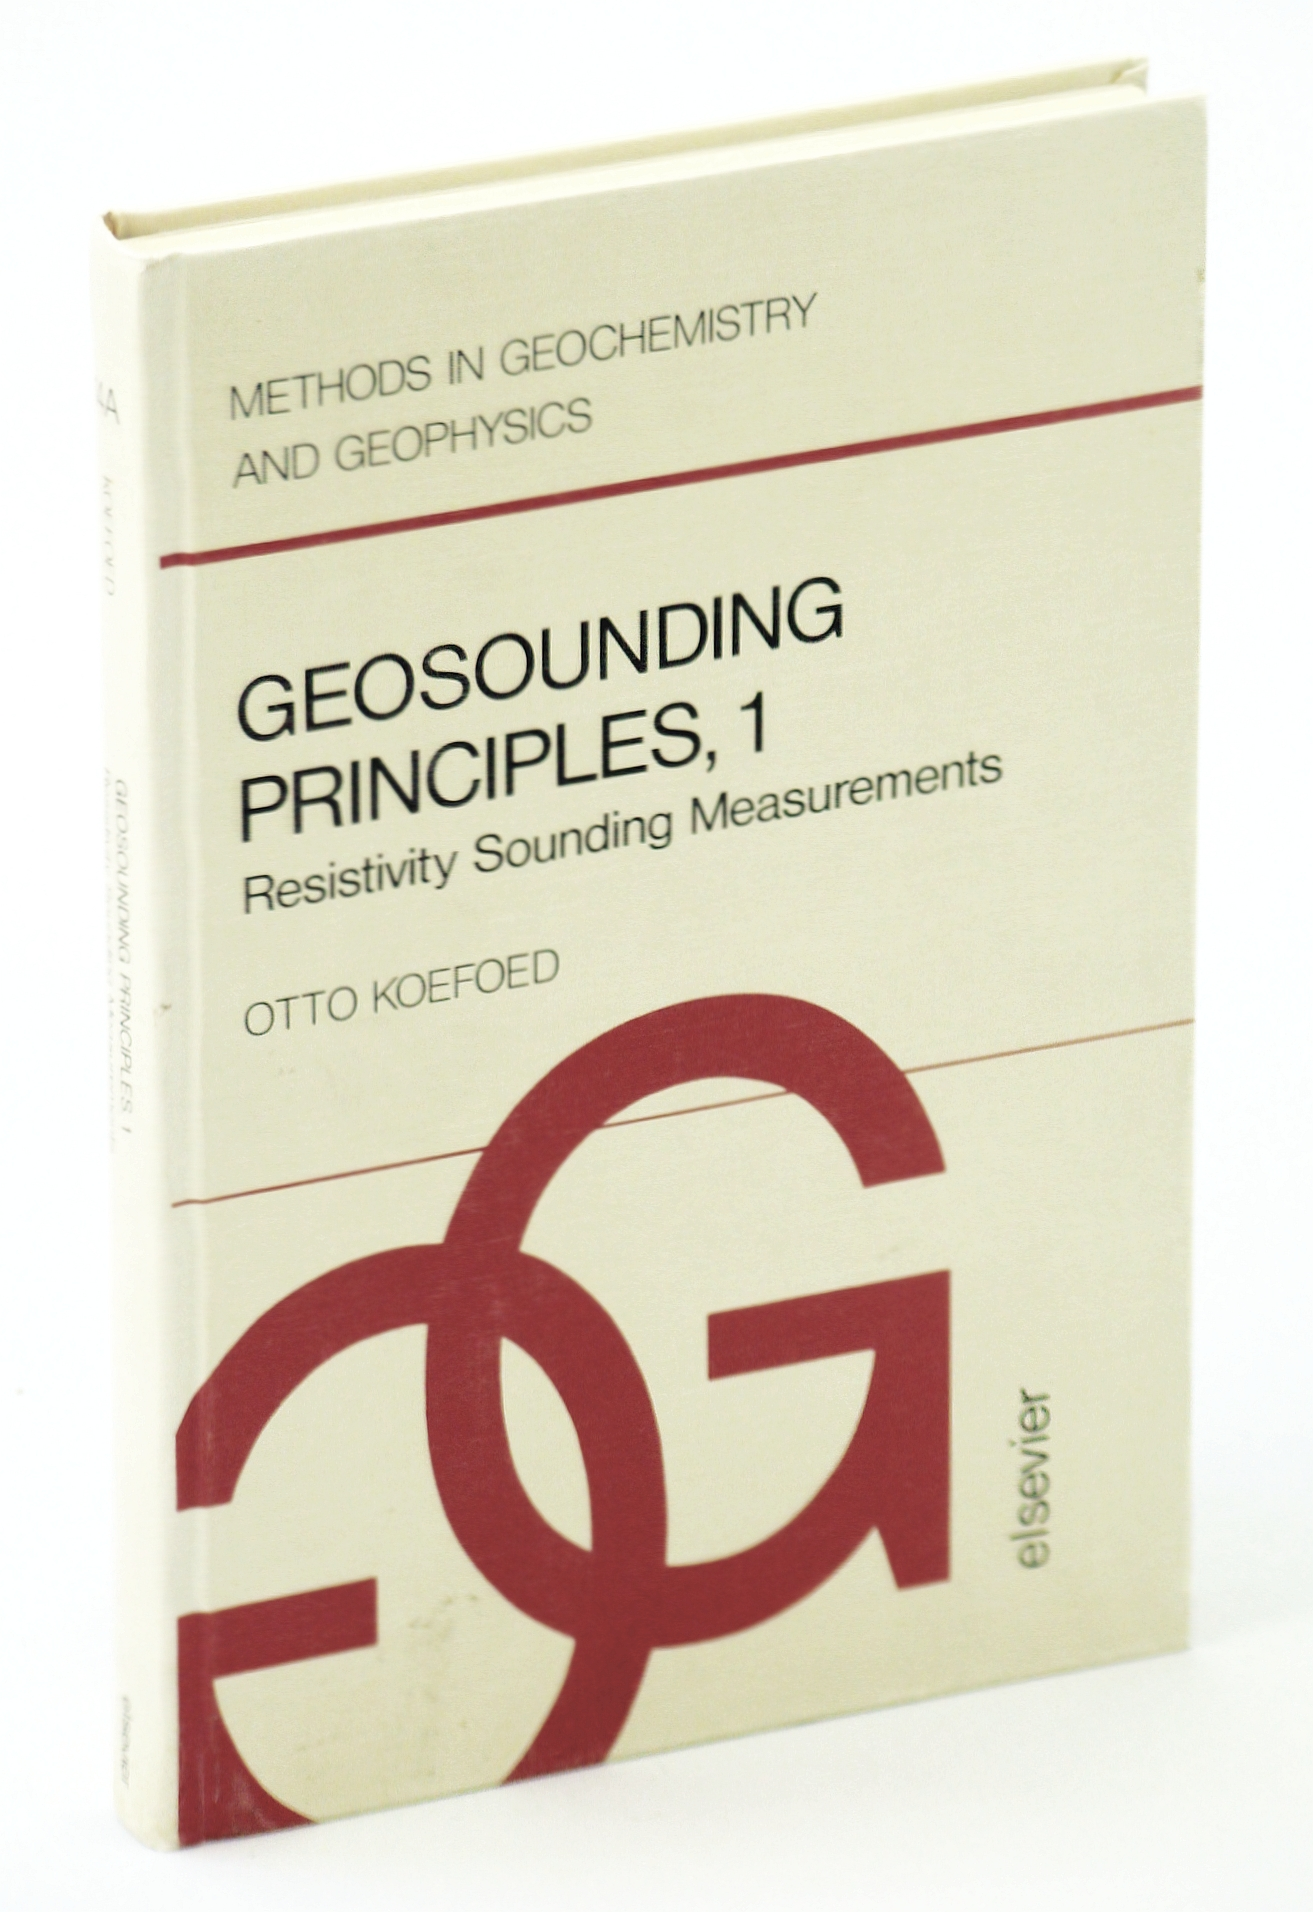 Image for Geosounding Principles: Resistivity Sounding Measurements (METHODS IN GEOCHEMISTRY AND GEOPHYSICS)